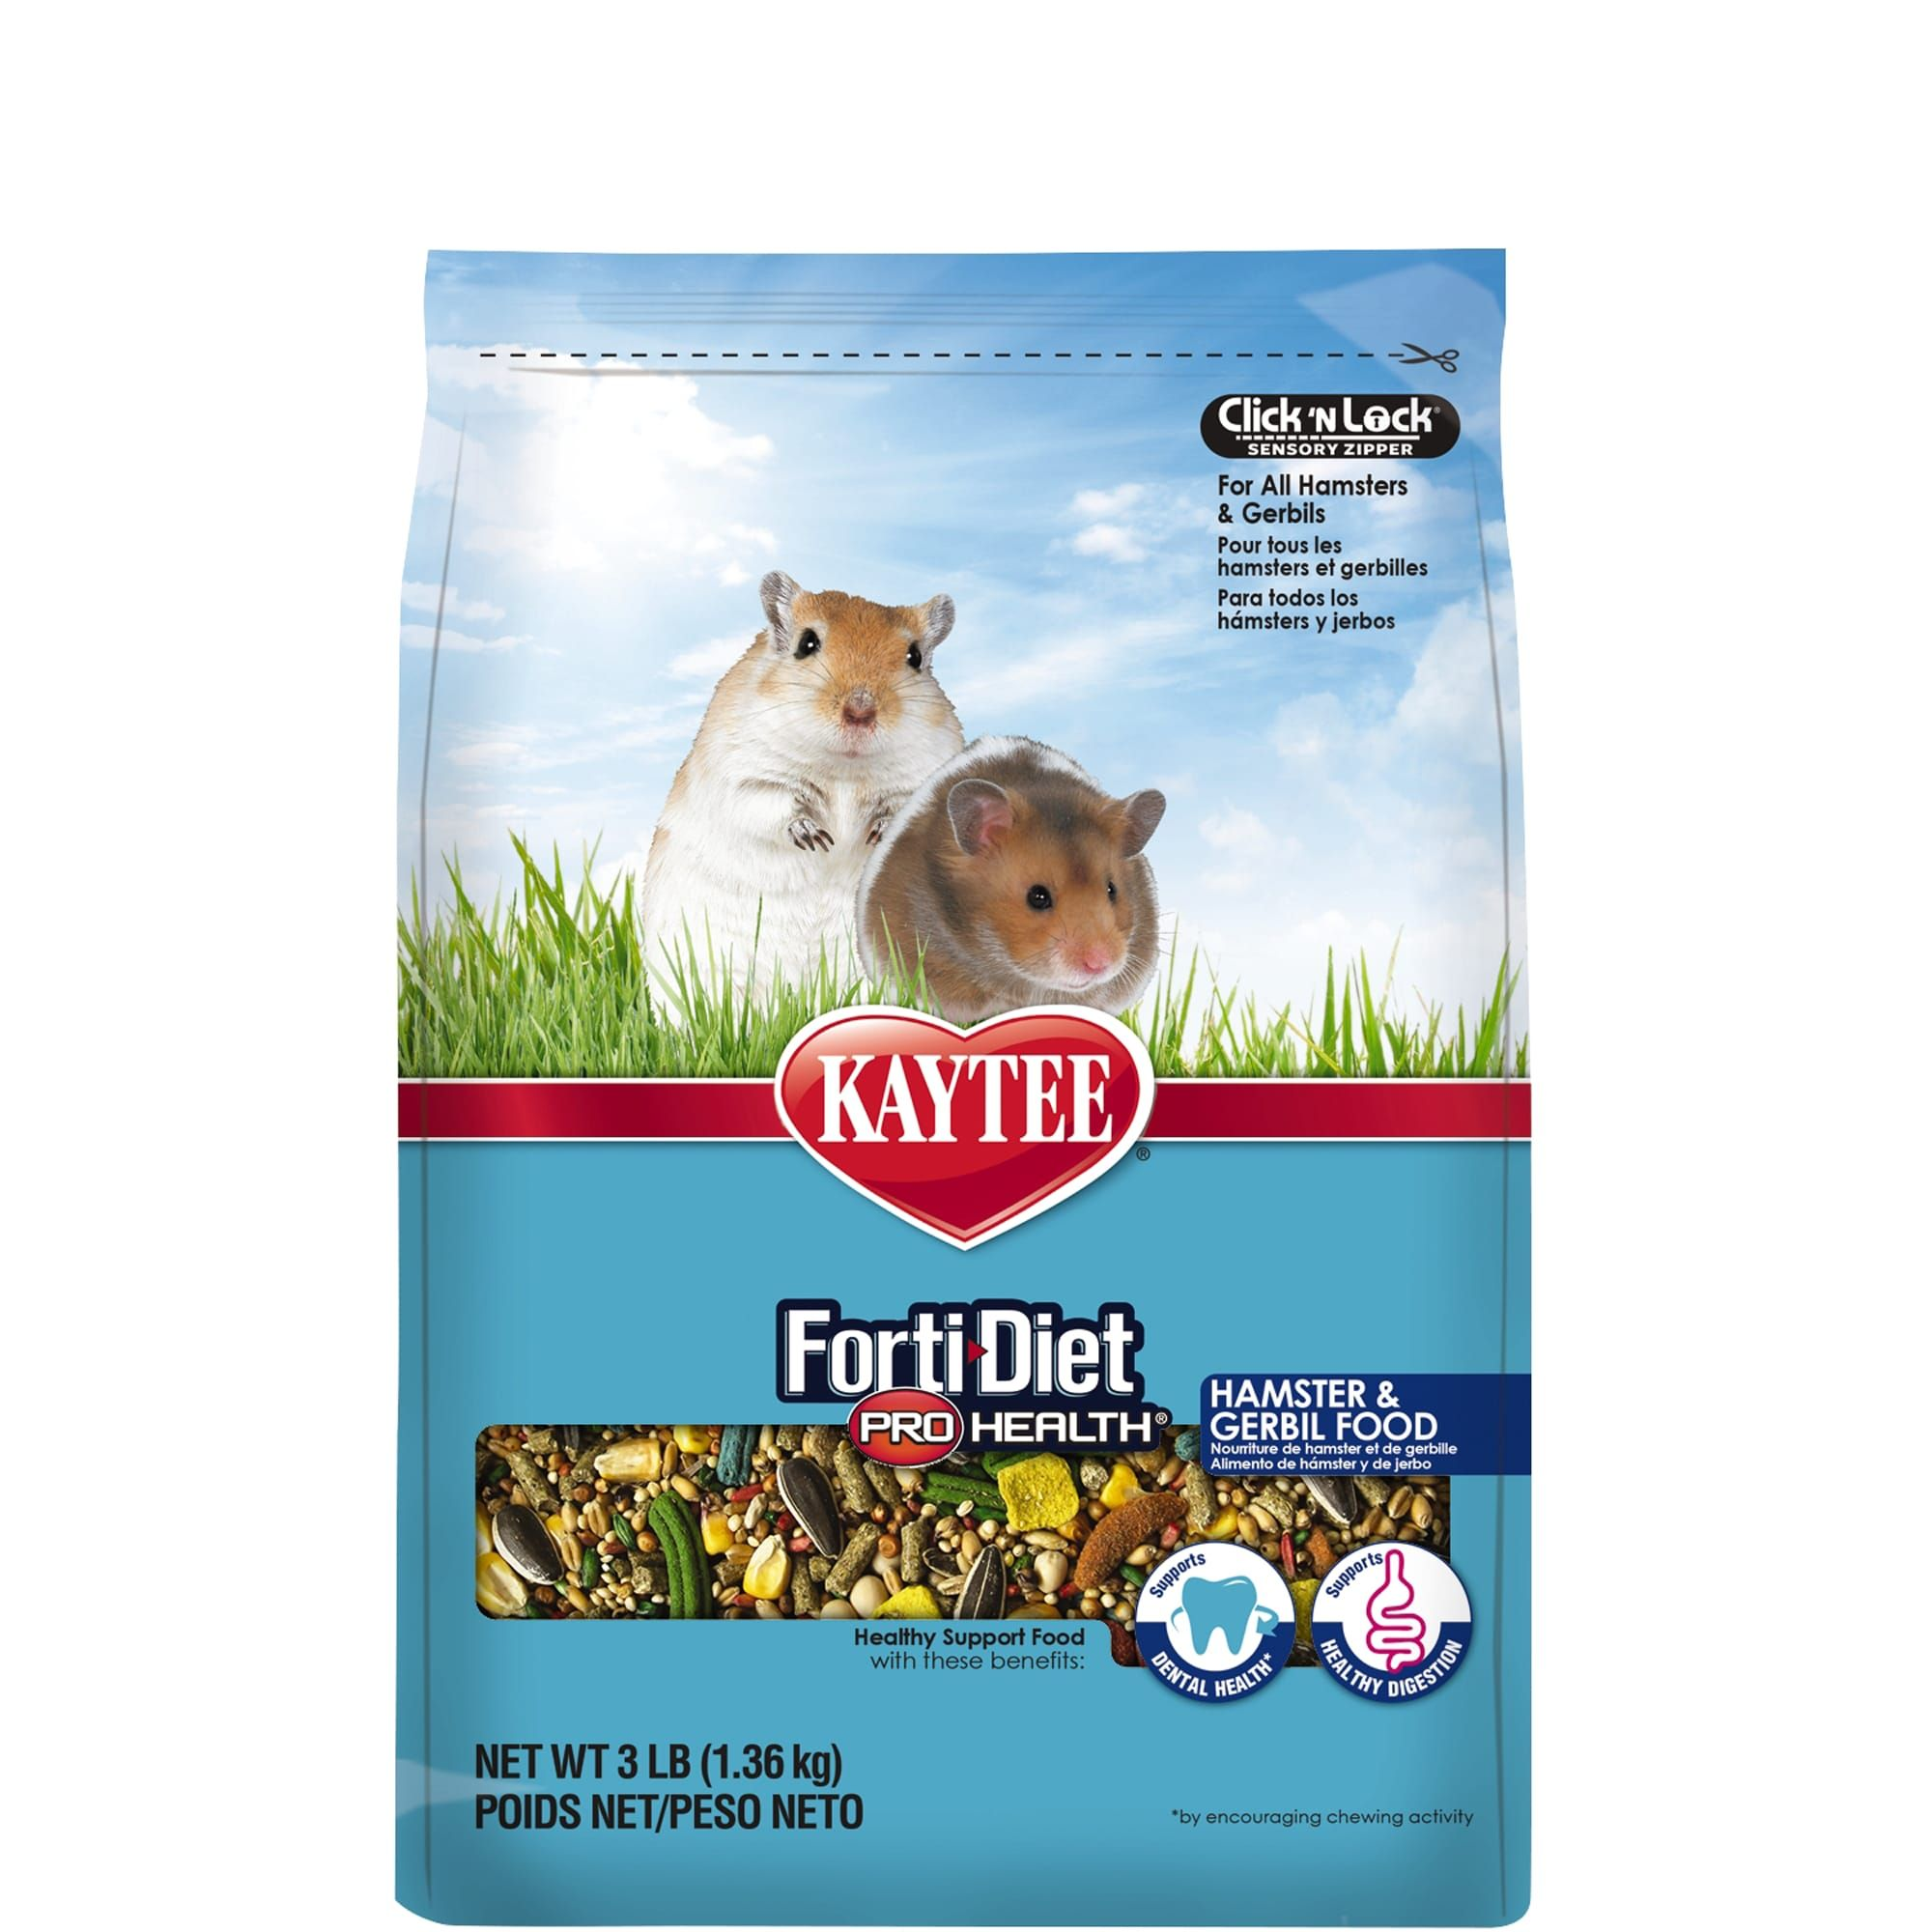 Kaytee Forti Diet Pro Health Hamster Gerbil Food Petco Hamster Food Hamster Chinchilla Food